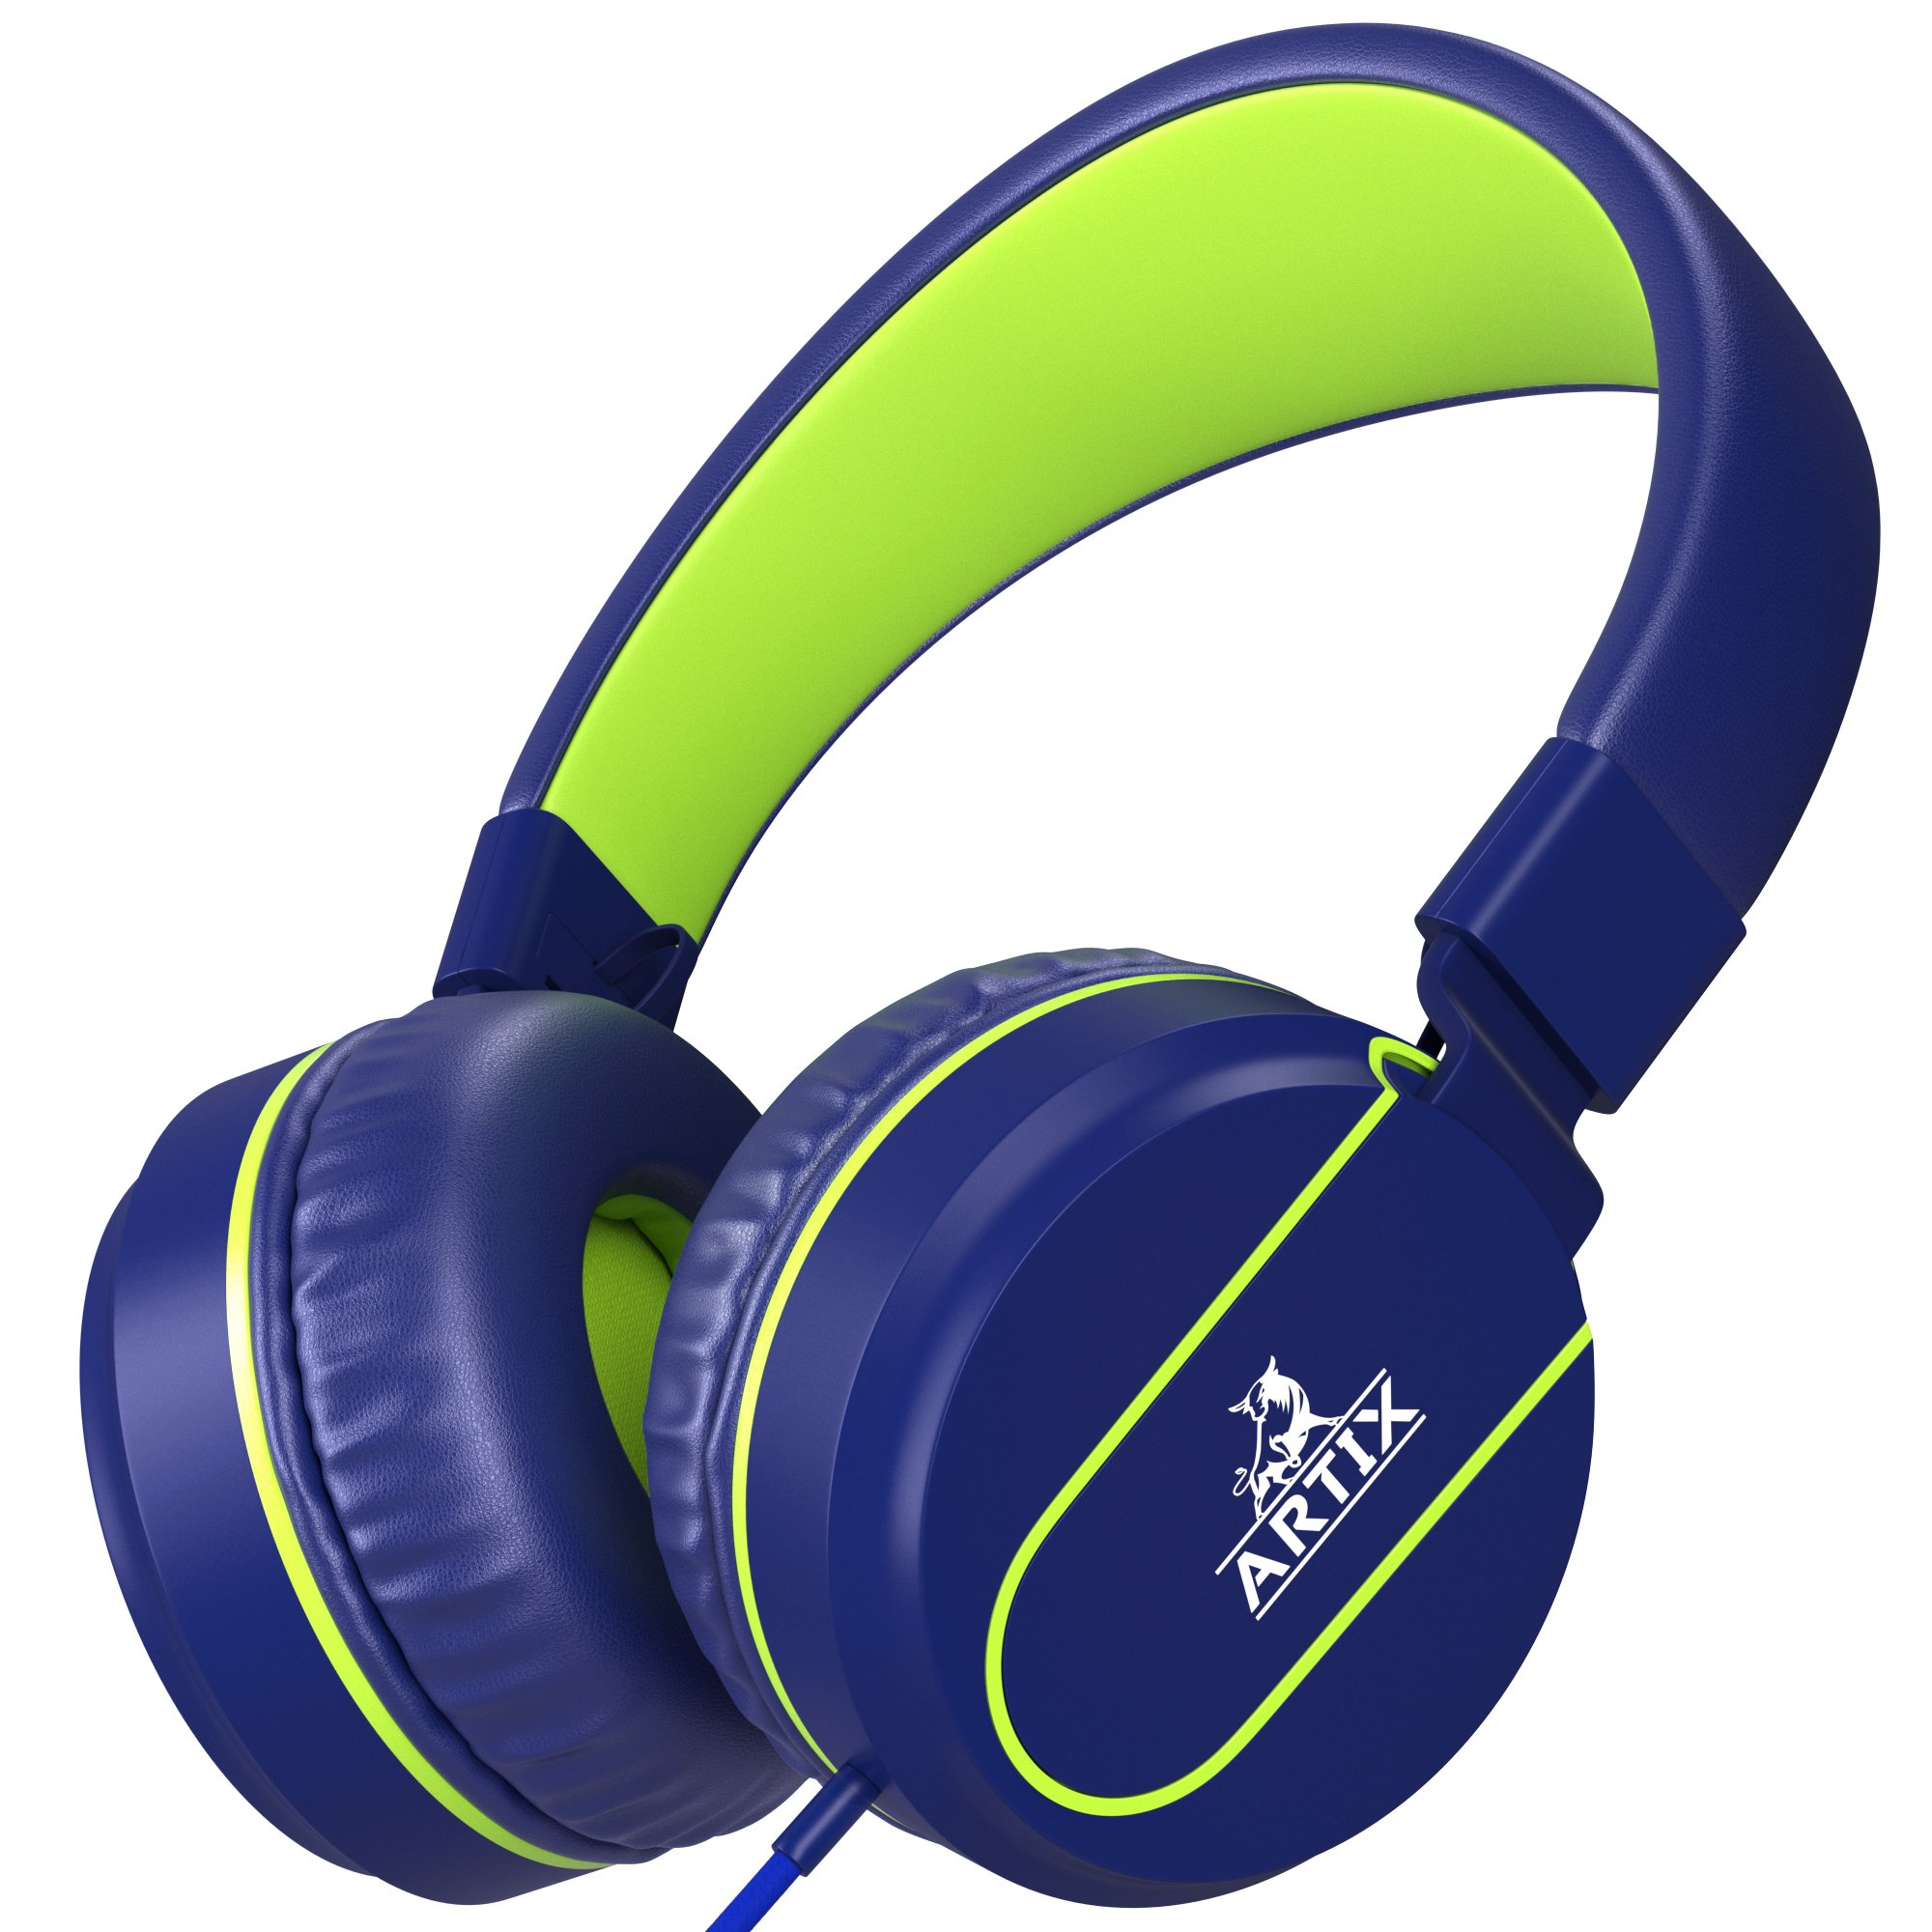 Artix Foldable On-Ear Adjustable Tangle-Free Wired Headphones, Compact Stereo Earphones with In-line Microphone and Controls for Children, Teen, Adult Head Phones for Running Sport, Travel- Blue by ARTIX